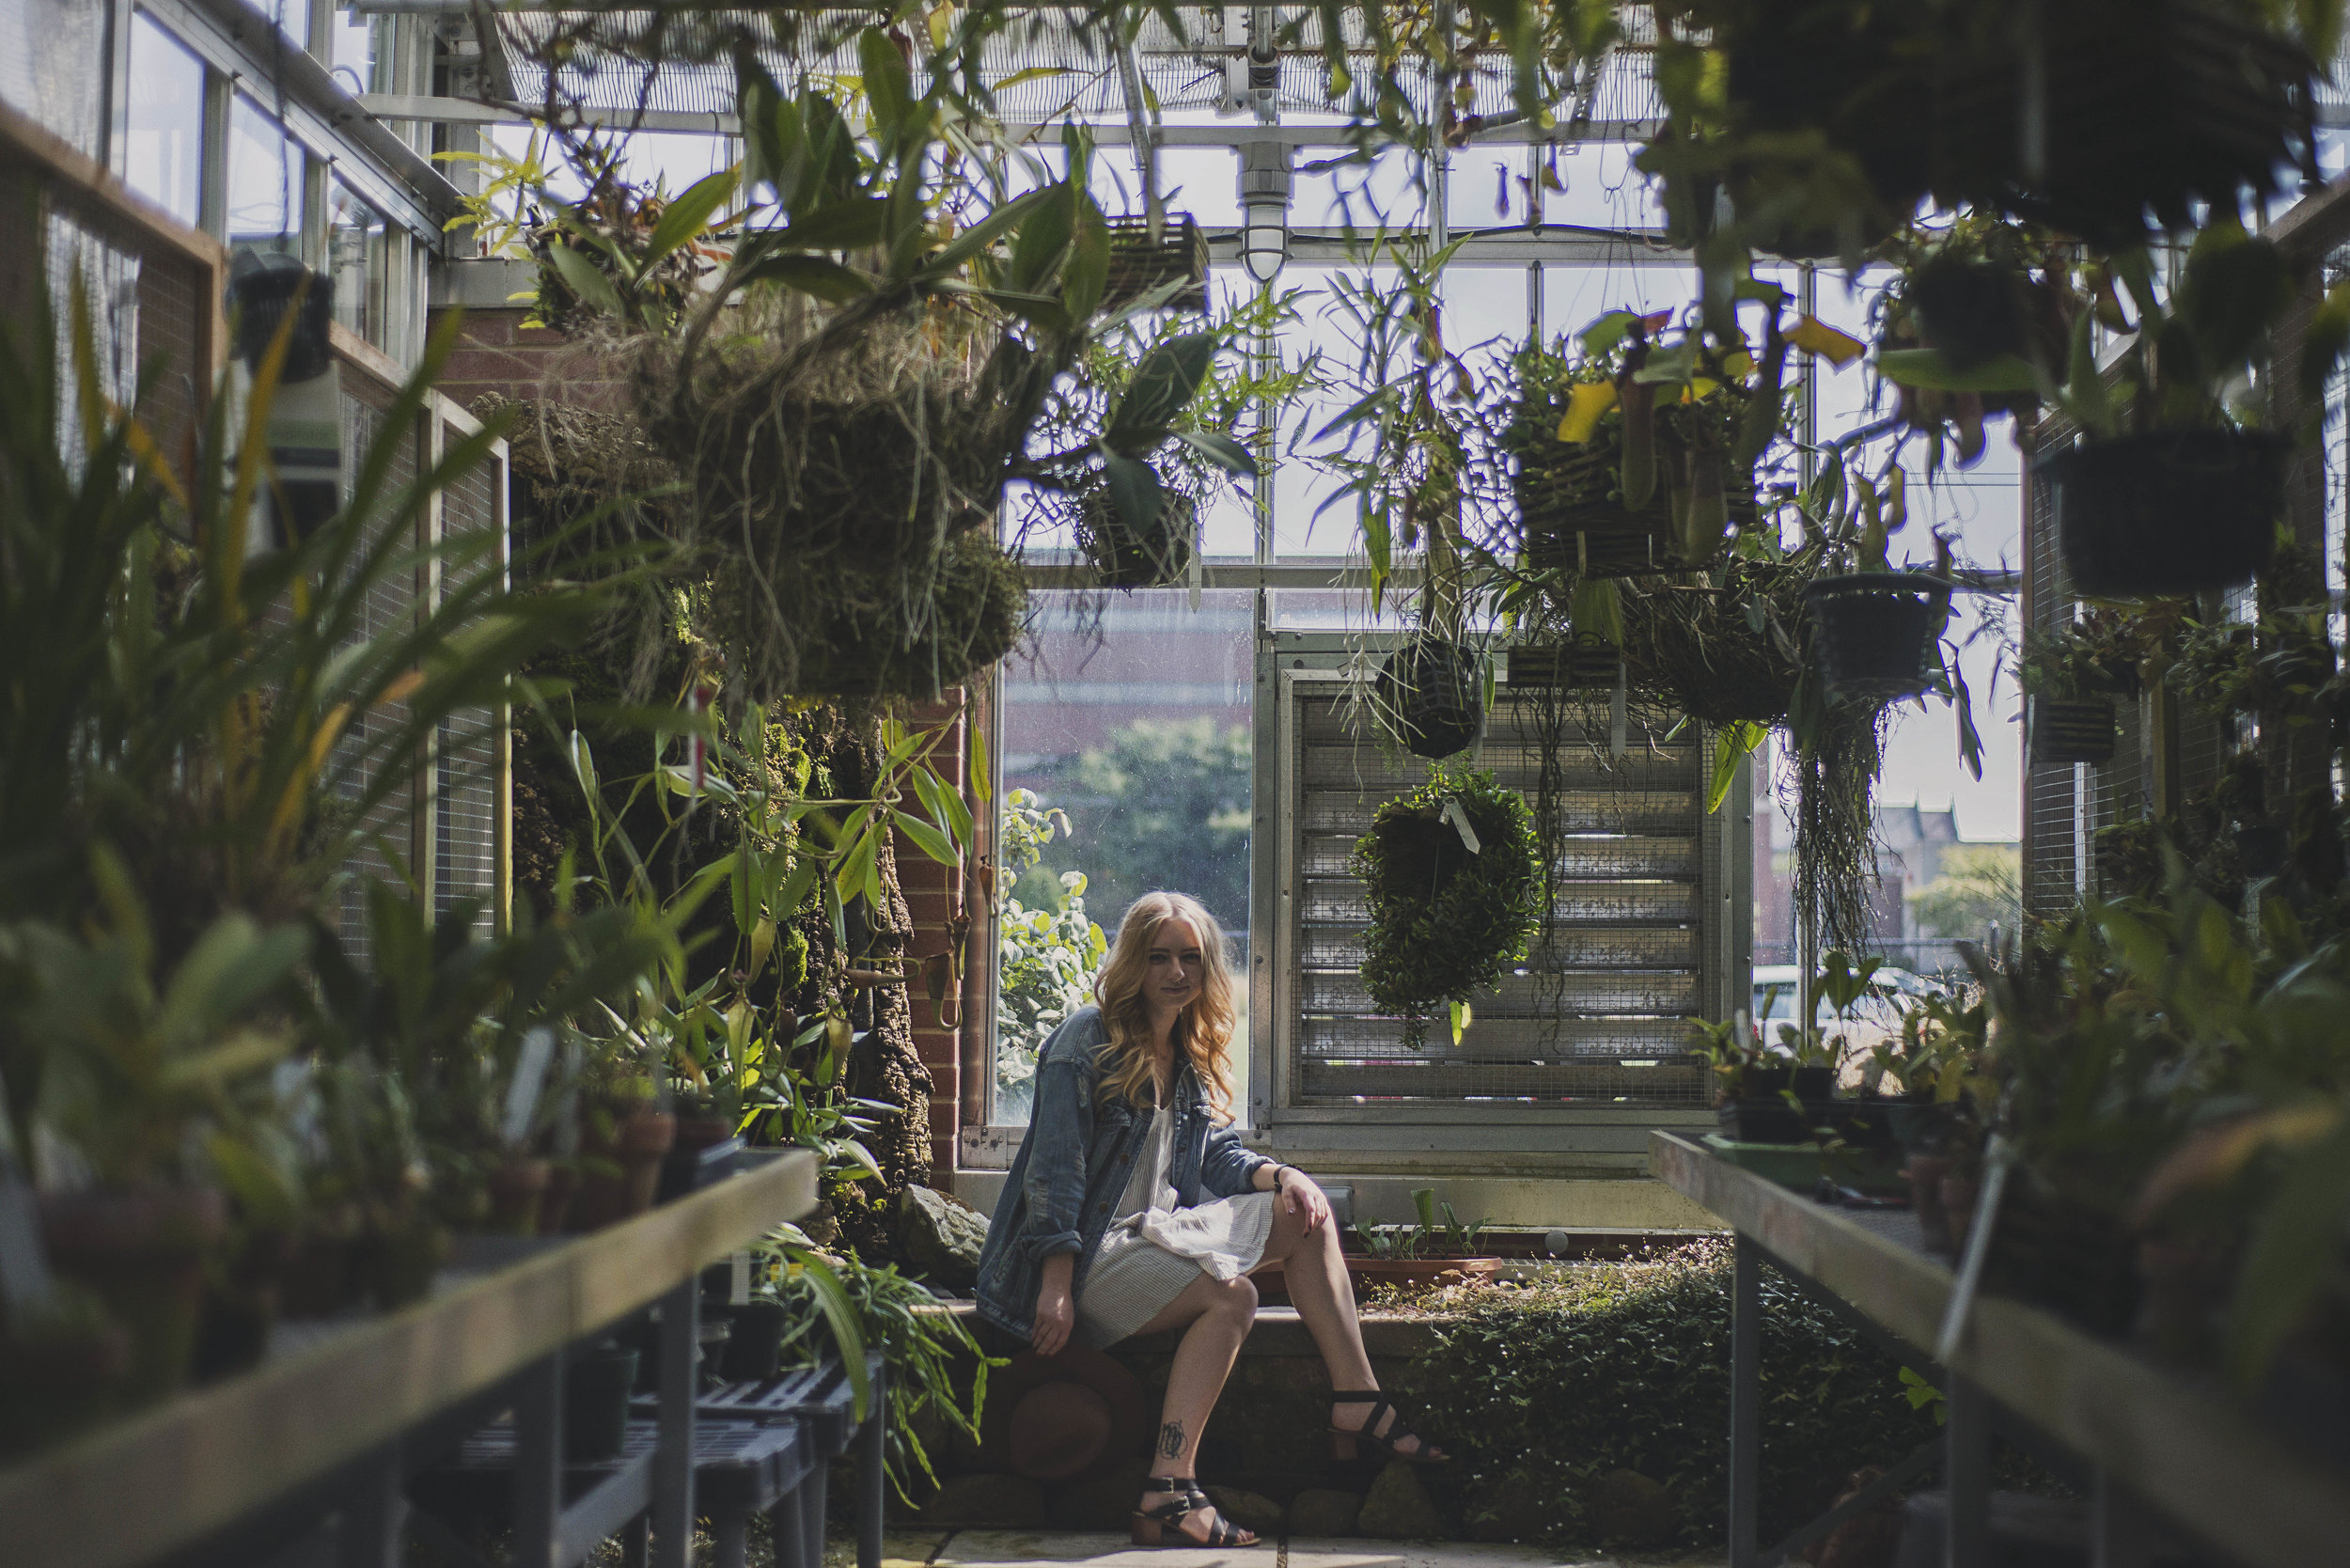 Miller Kern, a senior at Ball State, sits in the cooling room of the Dr. Joe and Alice Rinard Orchid Greenhouse.